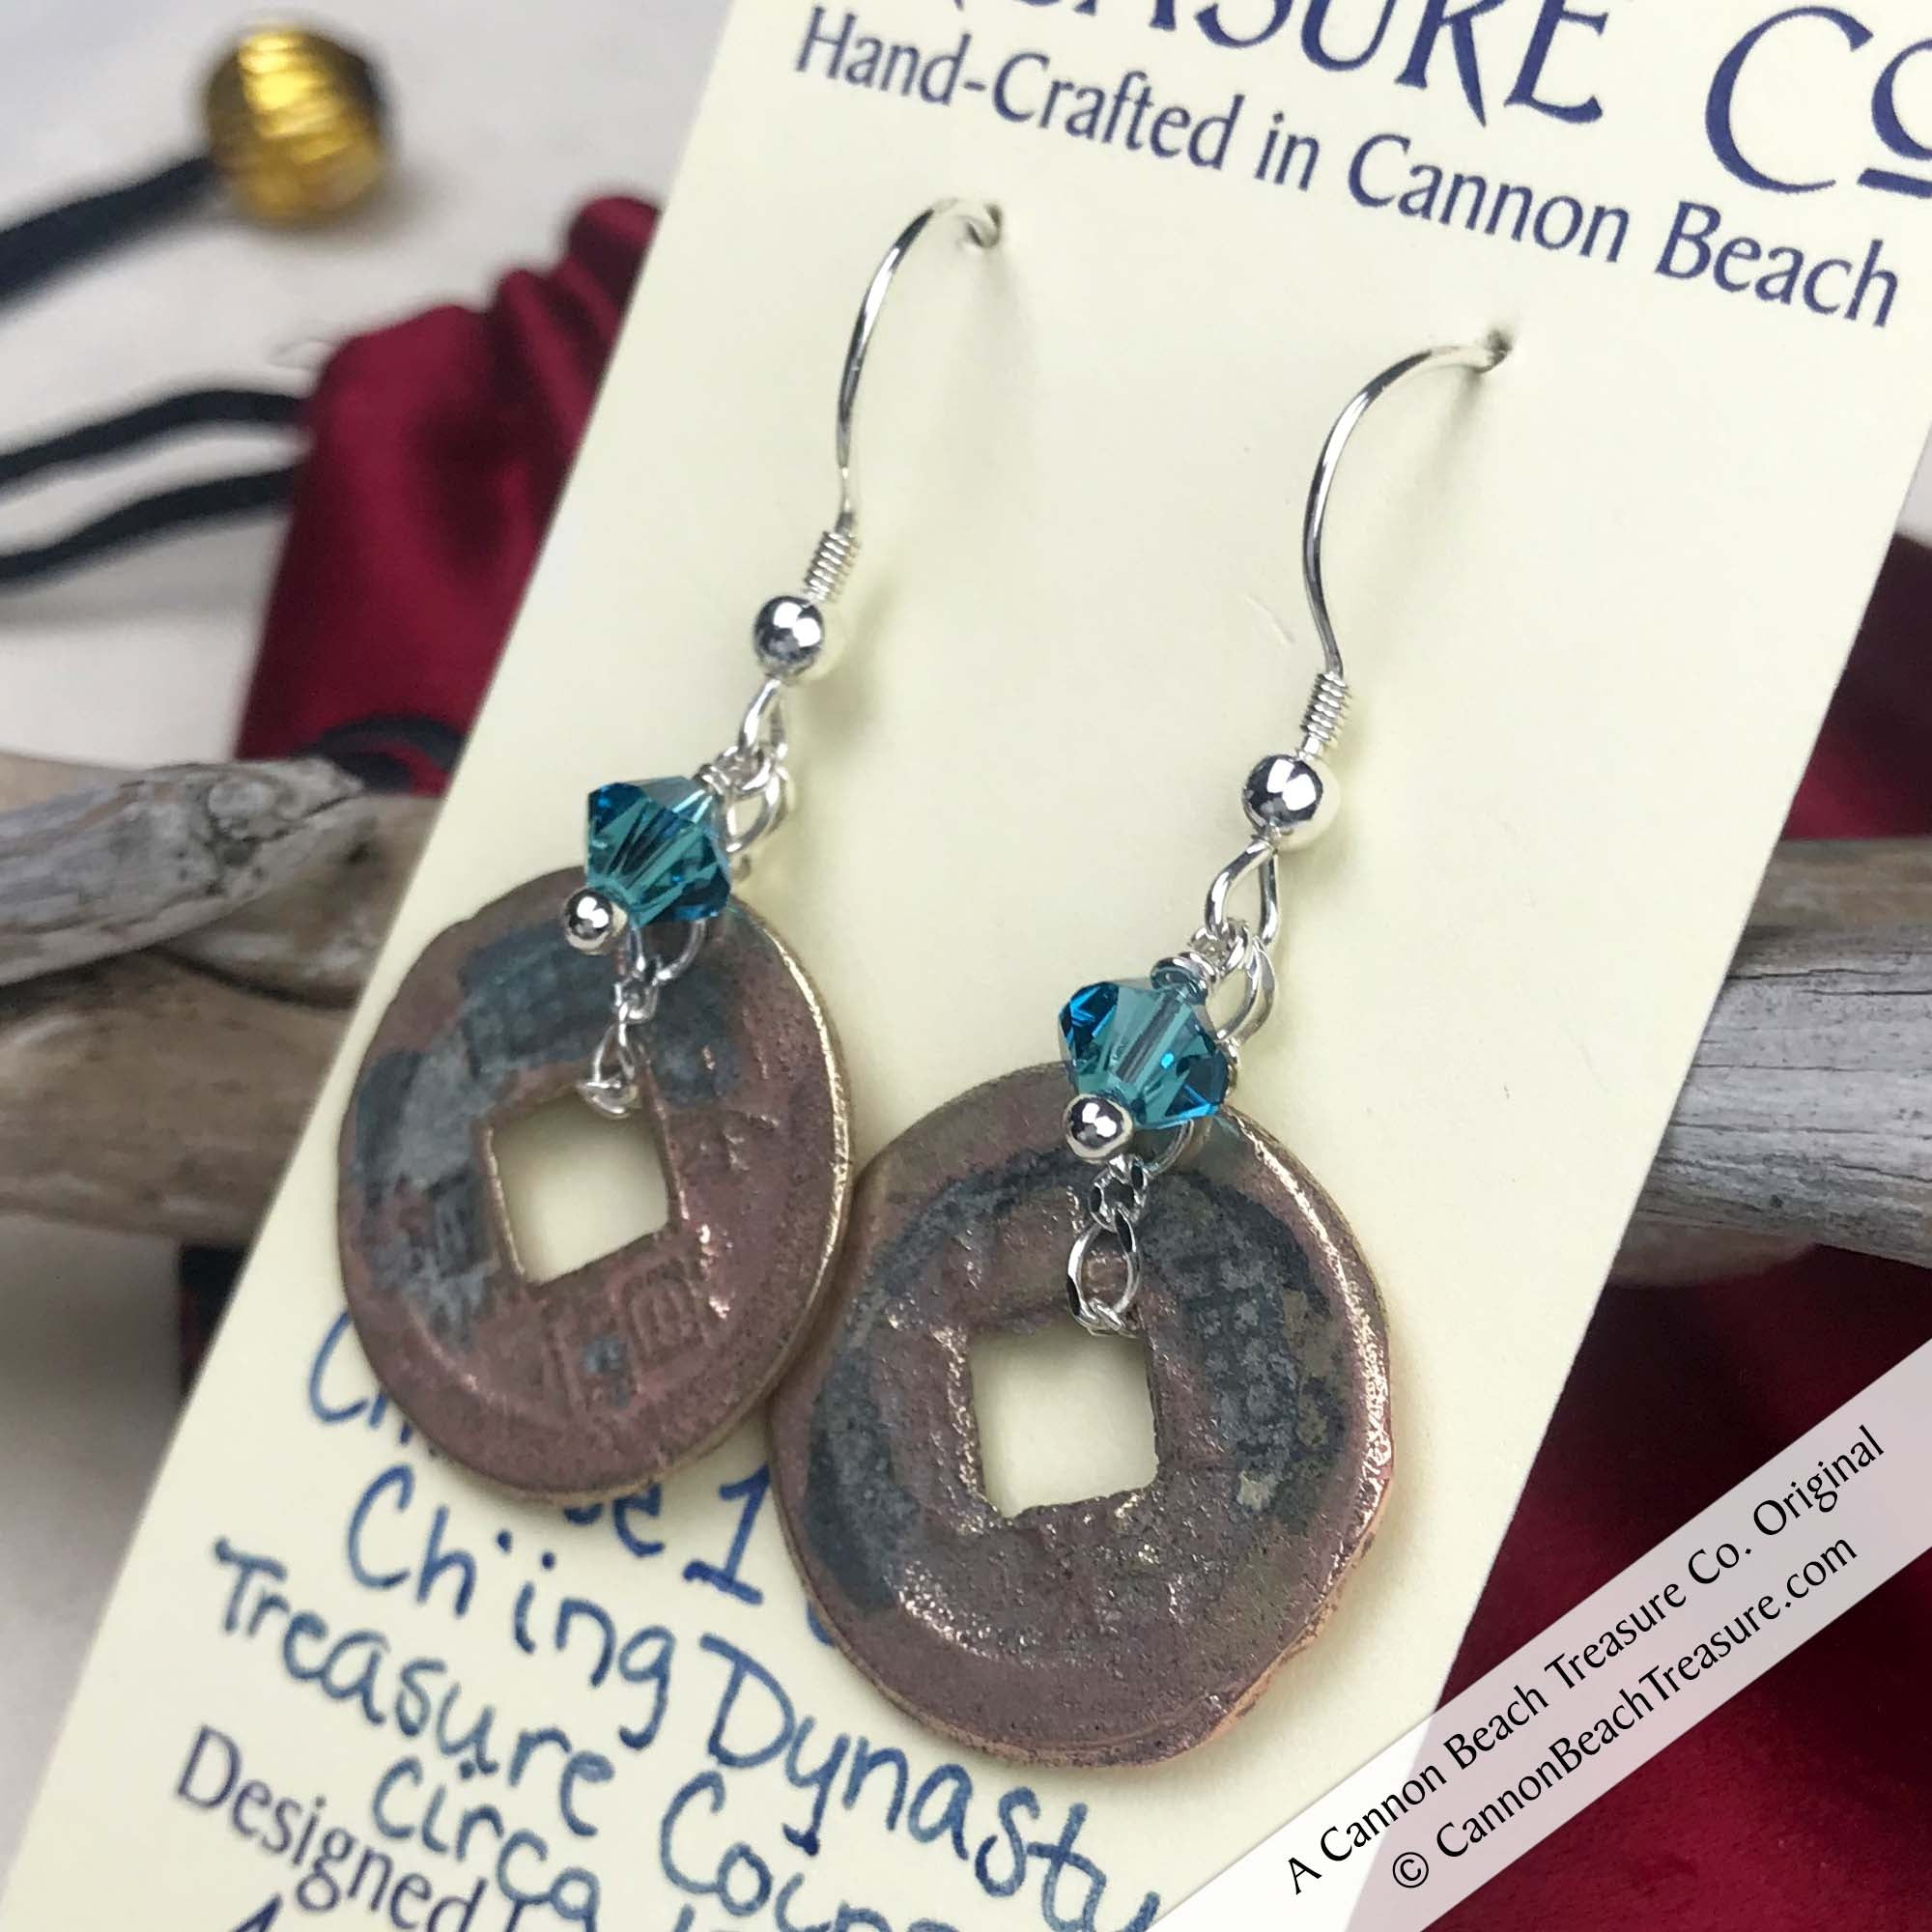 Ch'ing Dynasty 1 Cash Treasure Coin Earrings with Caribbean Blue Swarovski Crystals | Artifact #8712